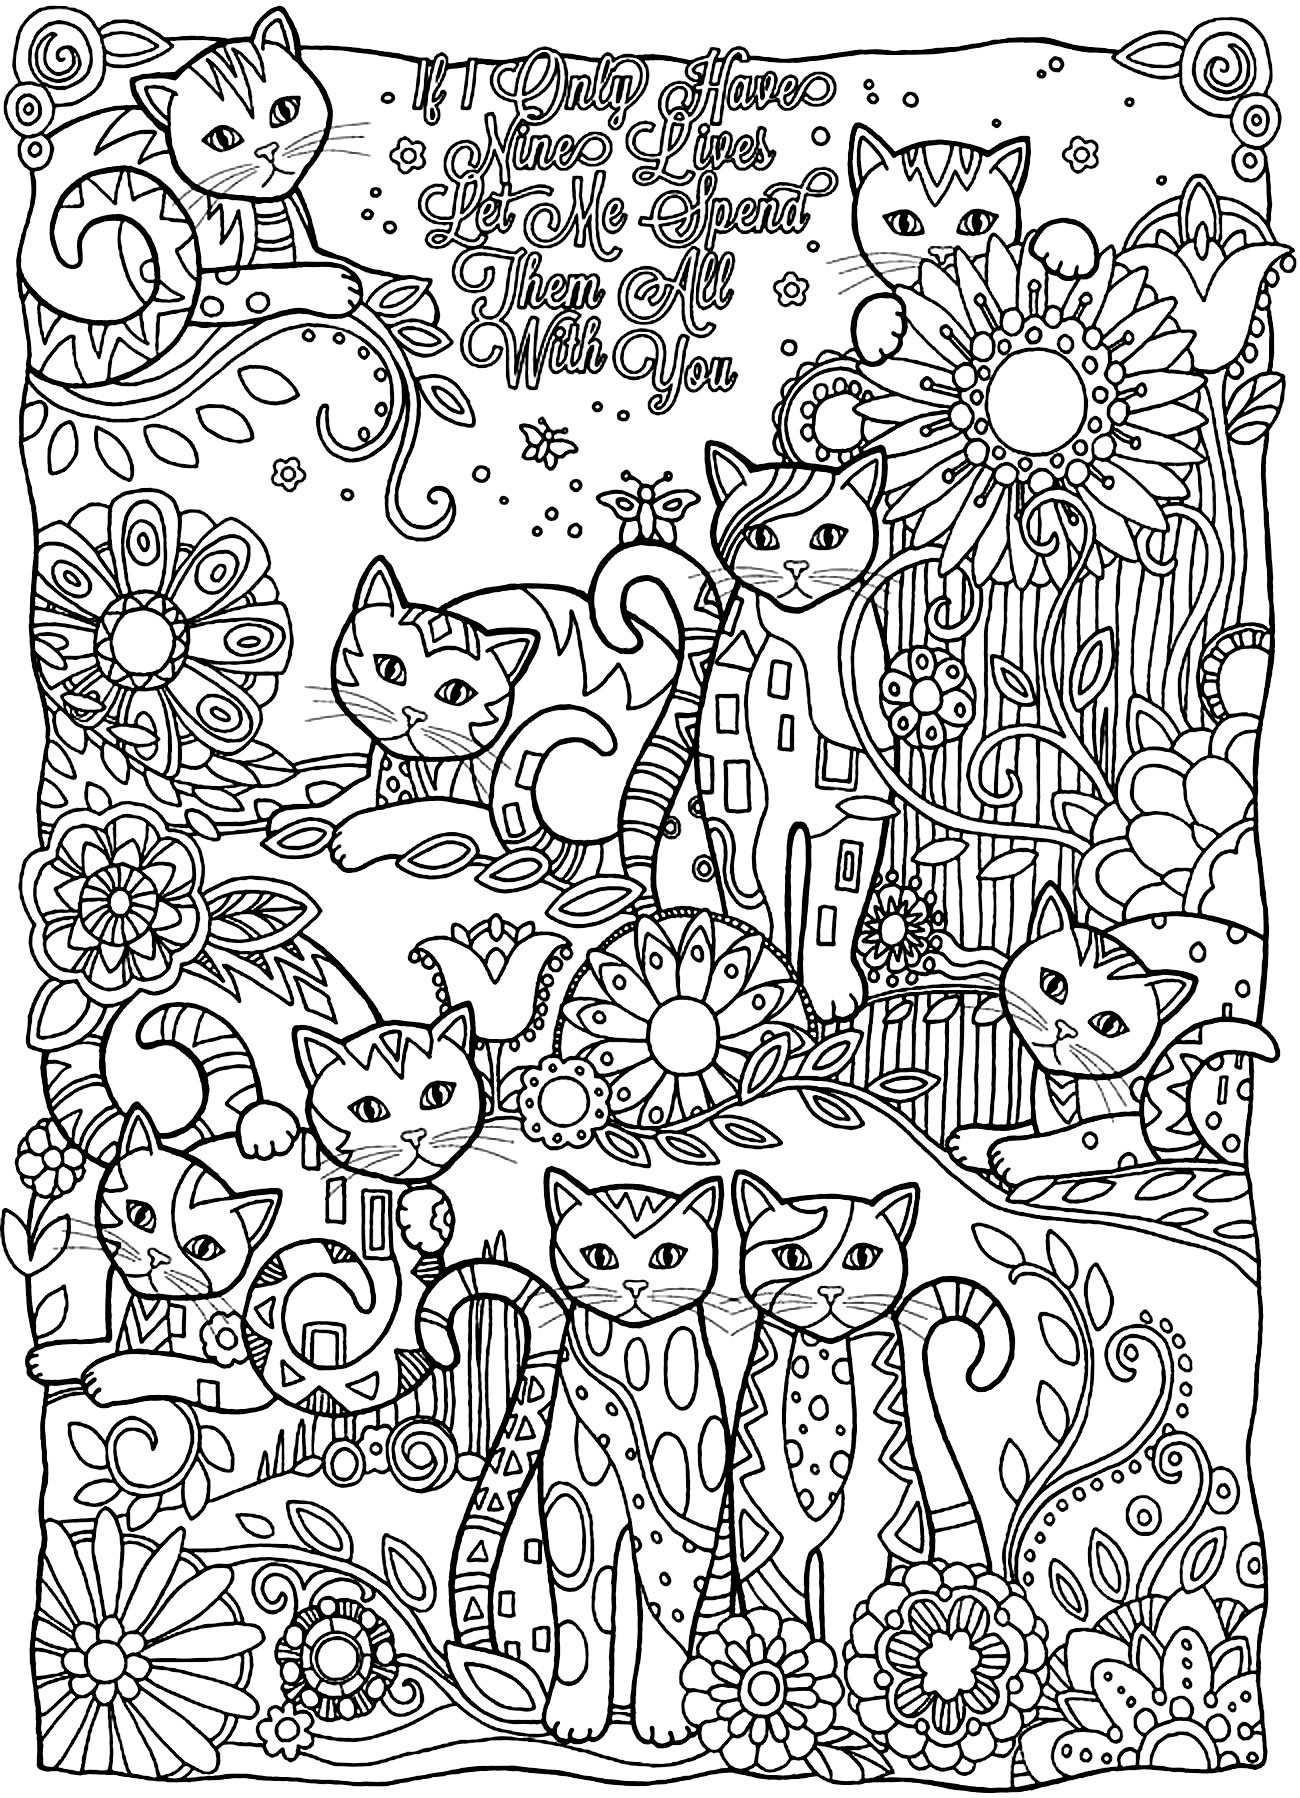 Unicorn Coloring Pages For Adults Free Printable Unicorn Coloring Pages For Adults To Print Cool Od